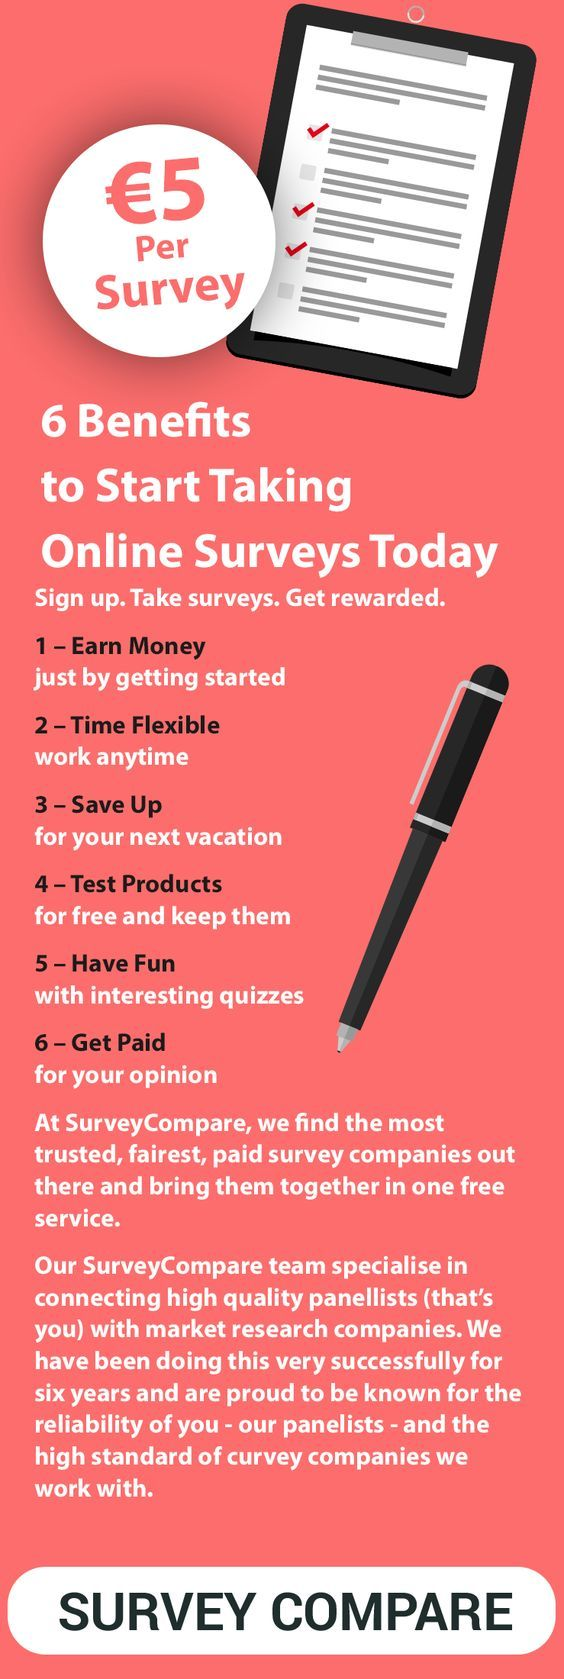 The most money you can earn with online surveys and get